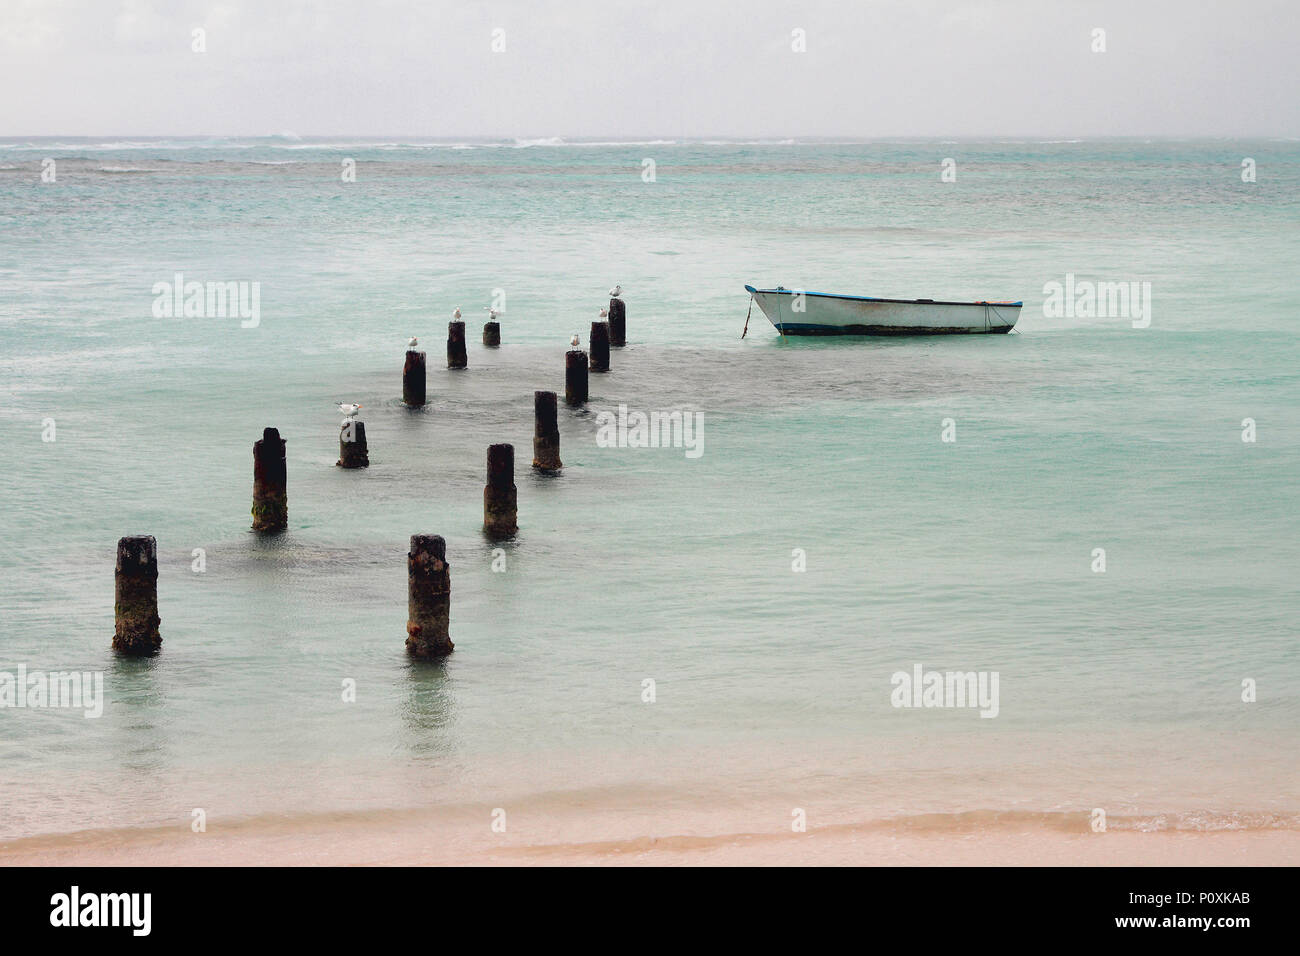 Support of destroyed pier, boat and ocean. Anse de Sent An, Pointe-a-Pitre, Guadeloupe - Stock Image